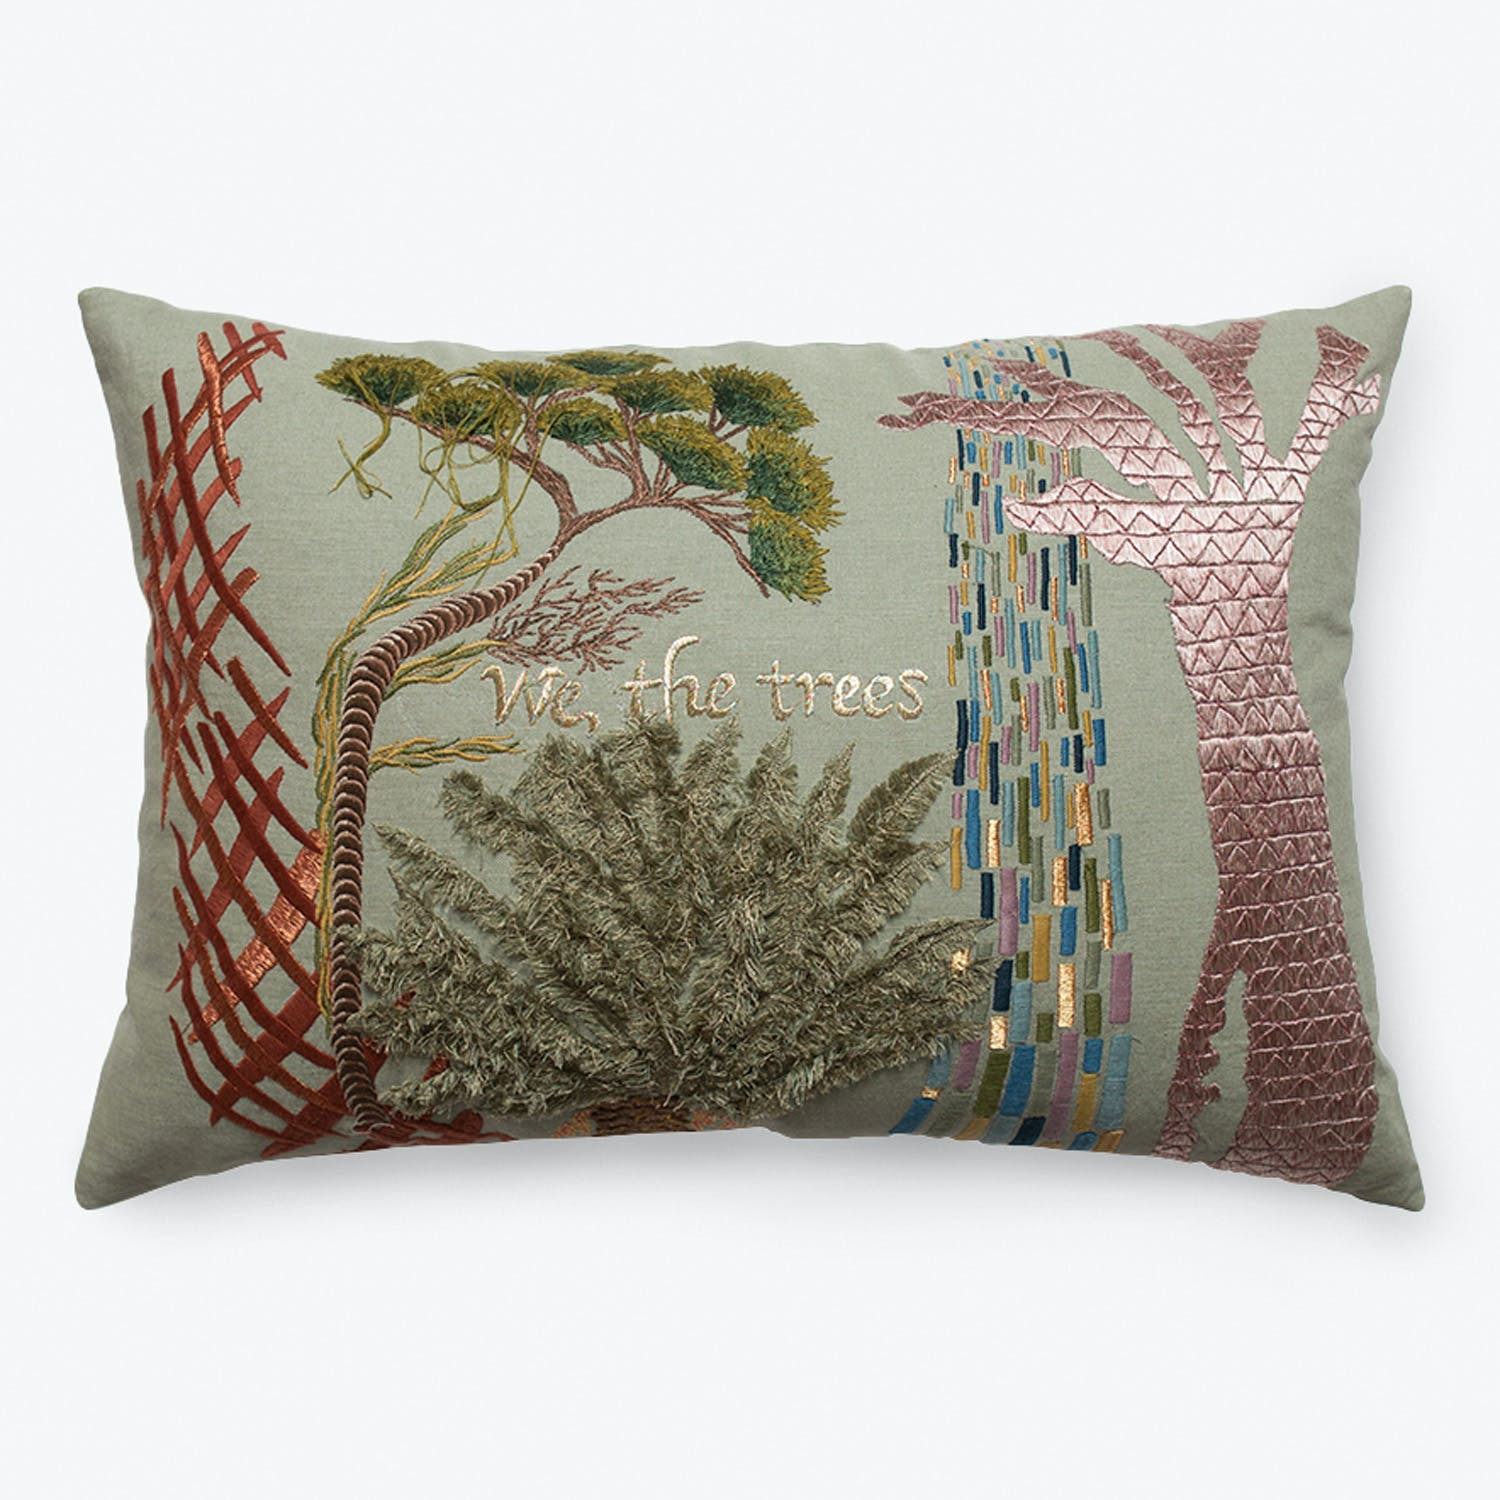 We The Trees Pillow